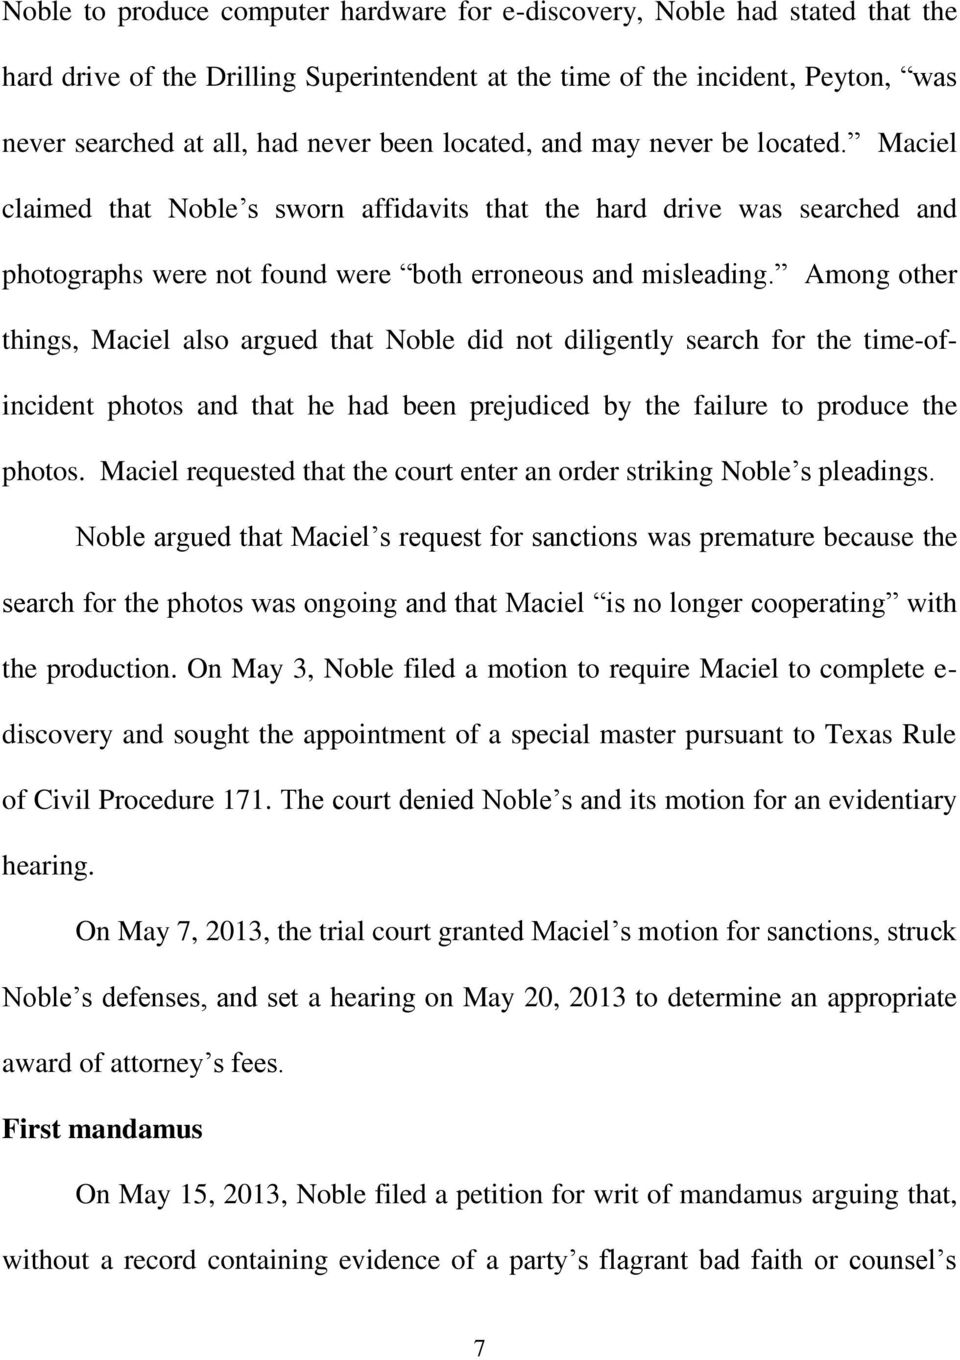 Among other things, Maciel also argued that Noble did not diligently search for the time-ofincident photos and that he had been prejudiced by the failure to produce the photos.